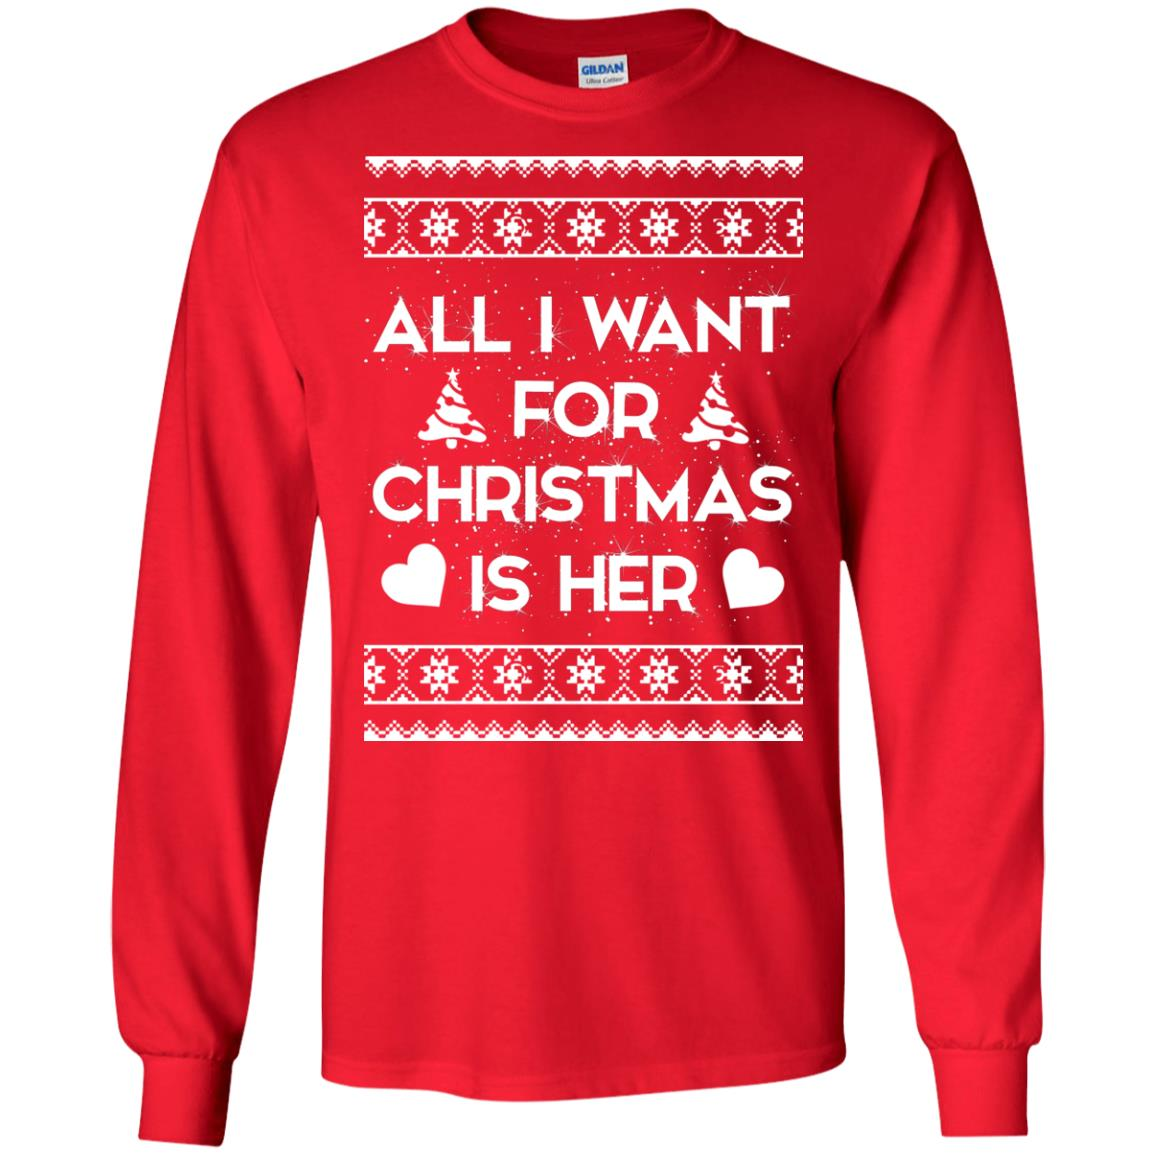 image 2384 - Couple Sweatshirt: All I Want For Christmas Is Her ugly Sweater, Shirt